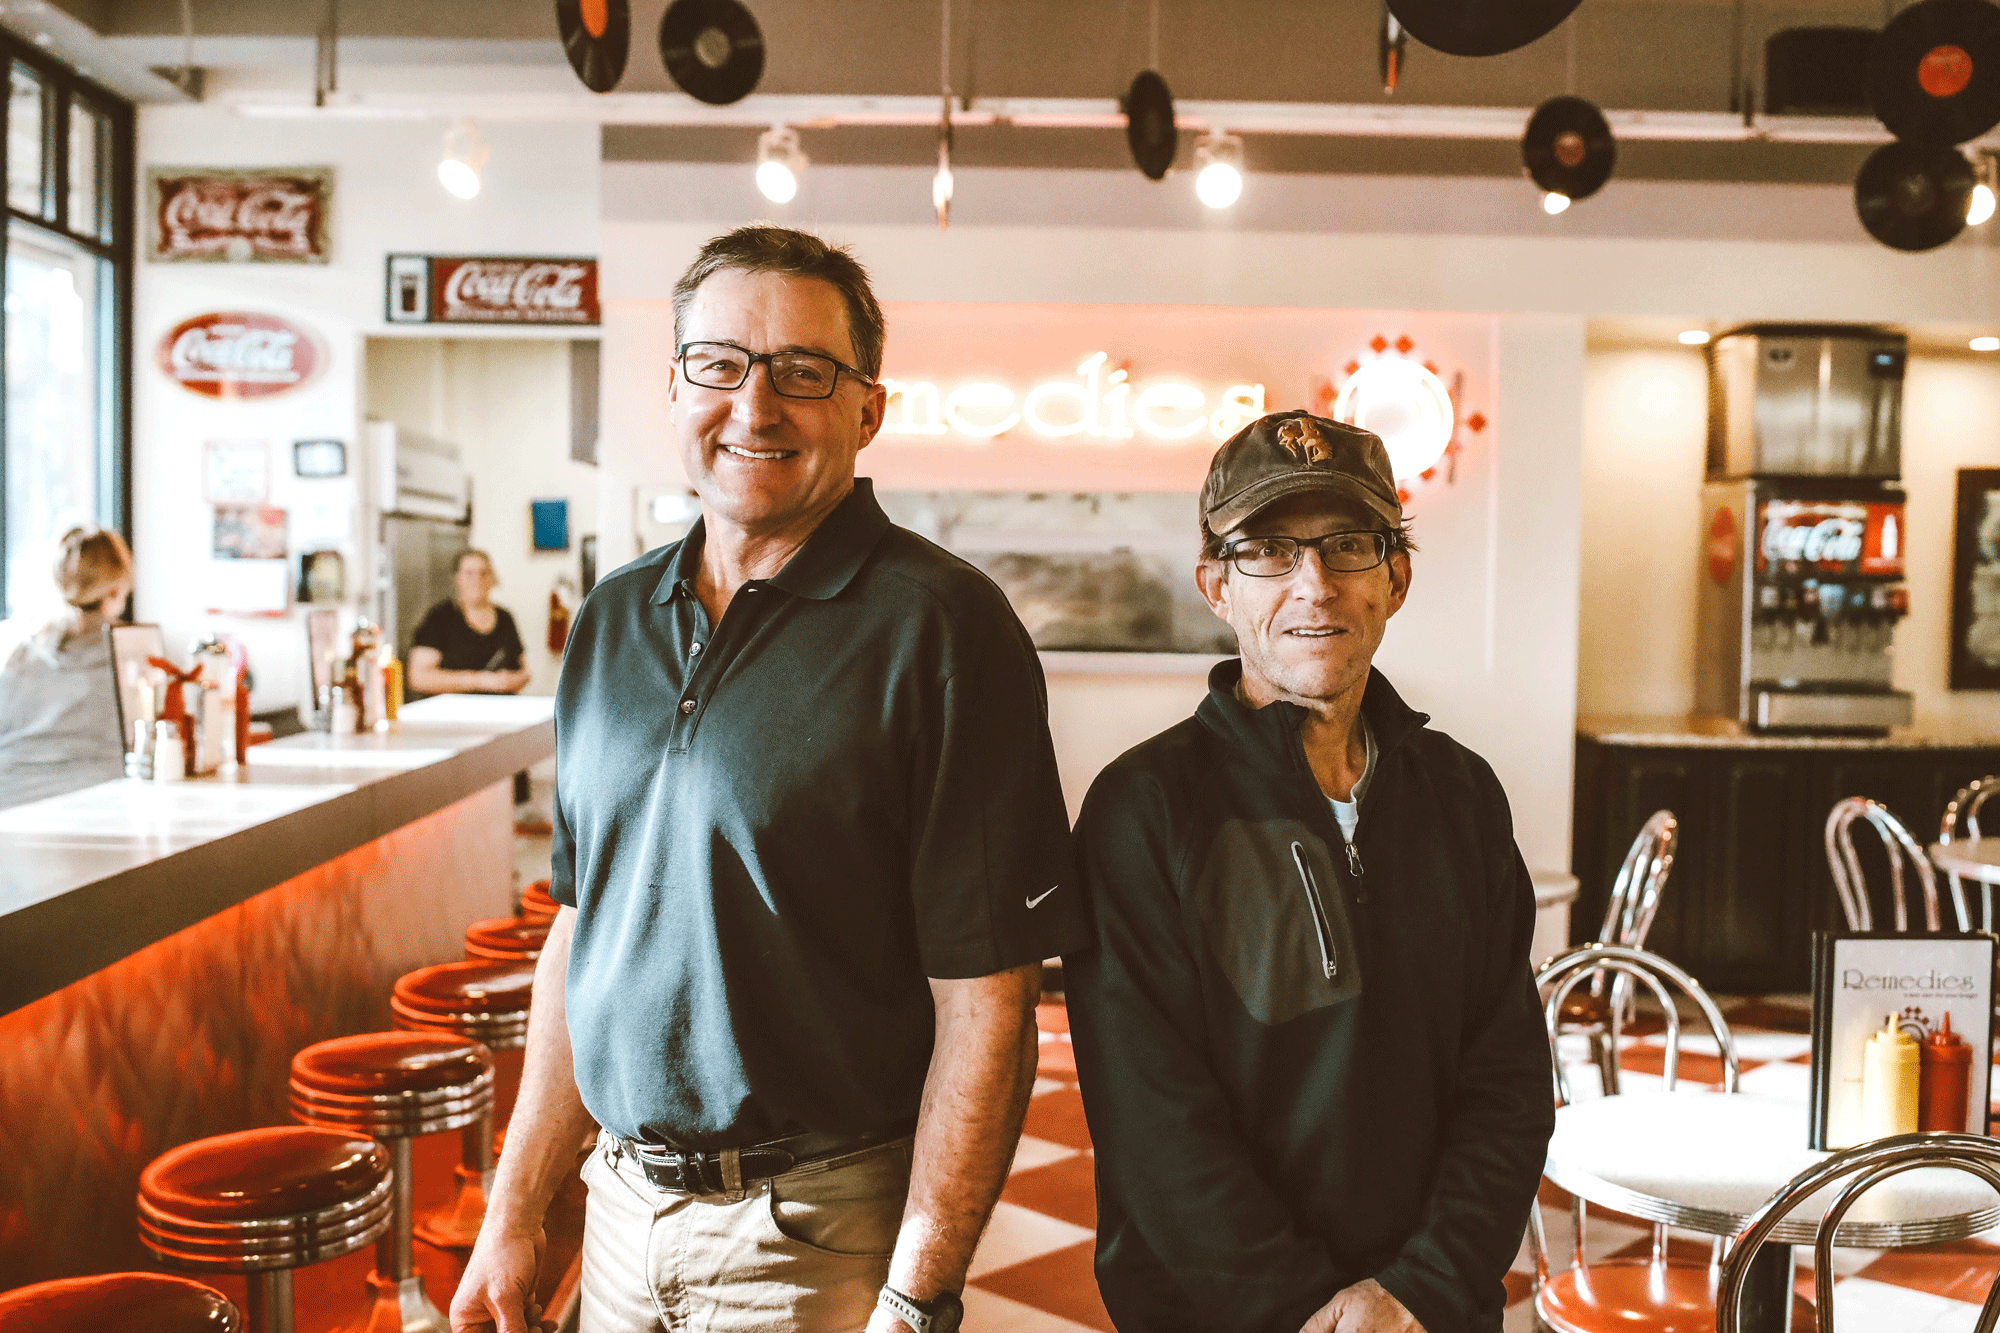 #HOMETOWN HUSTLE: Mark and John Piaia | Bi-Rite/Sweet Sage/Remedies